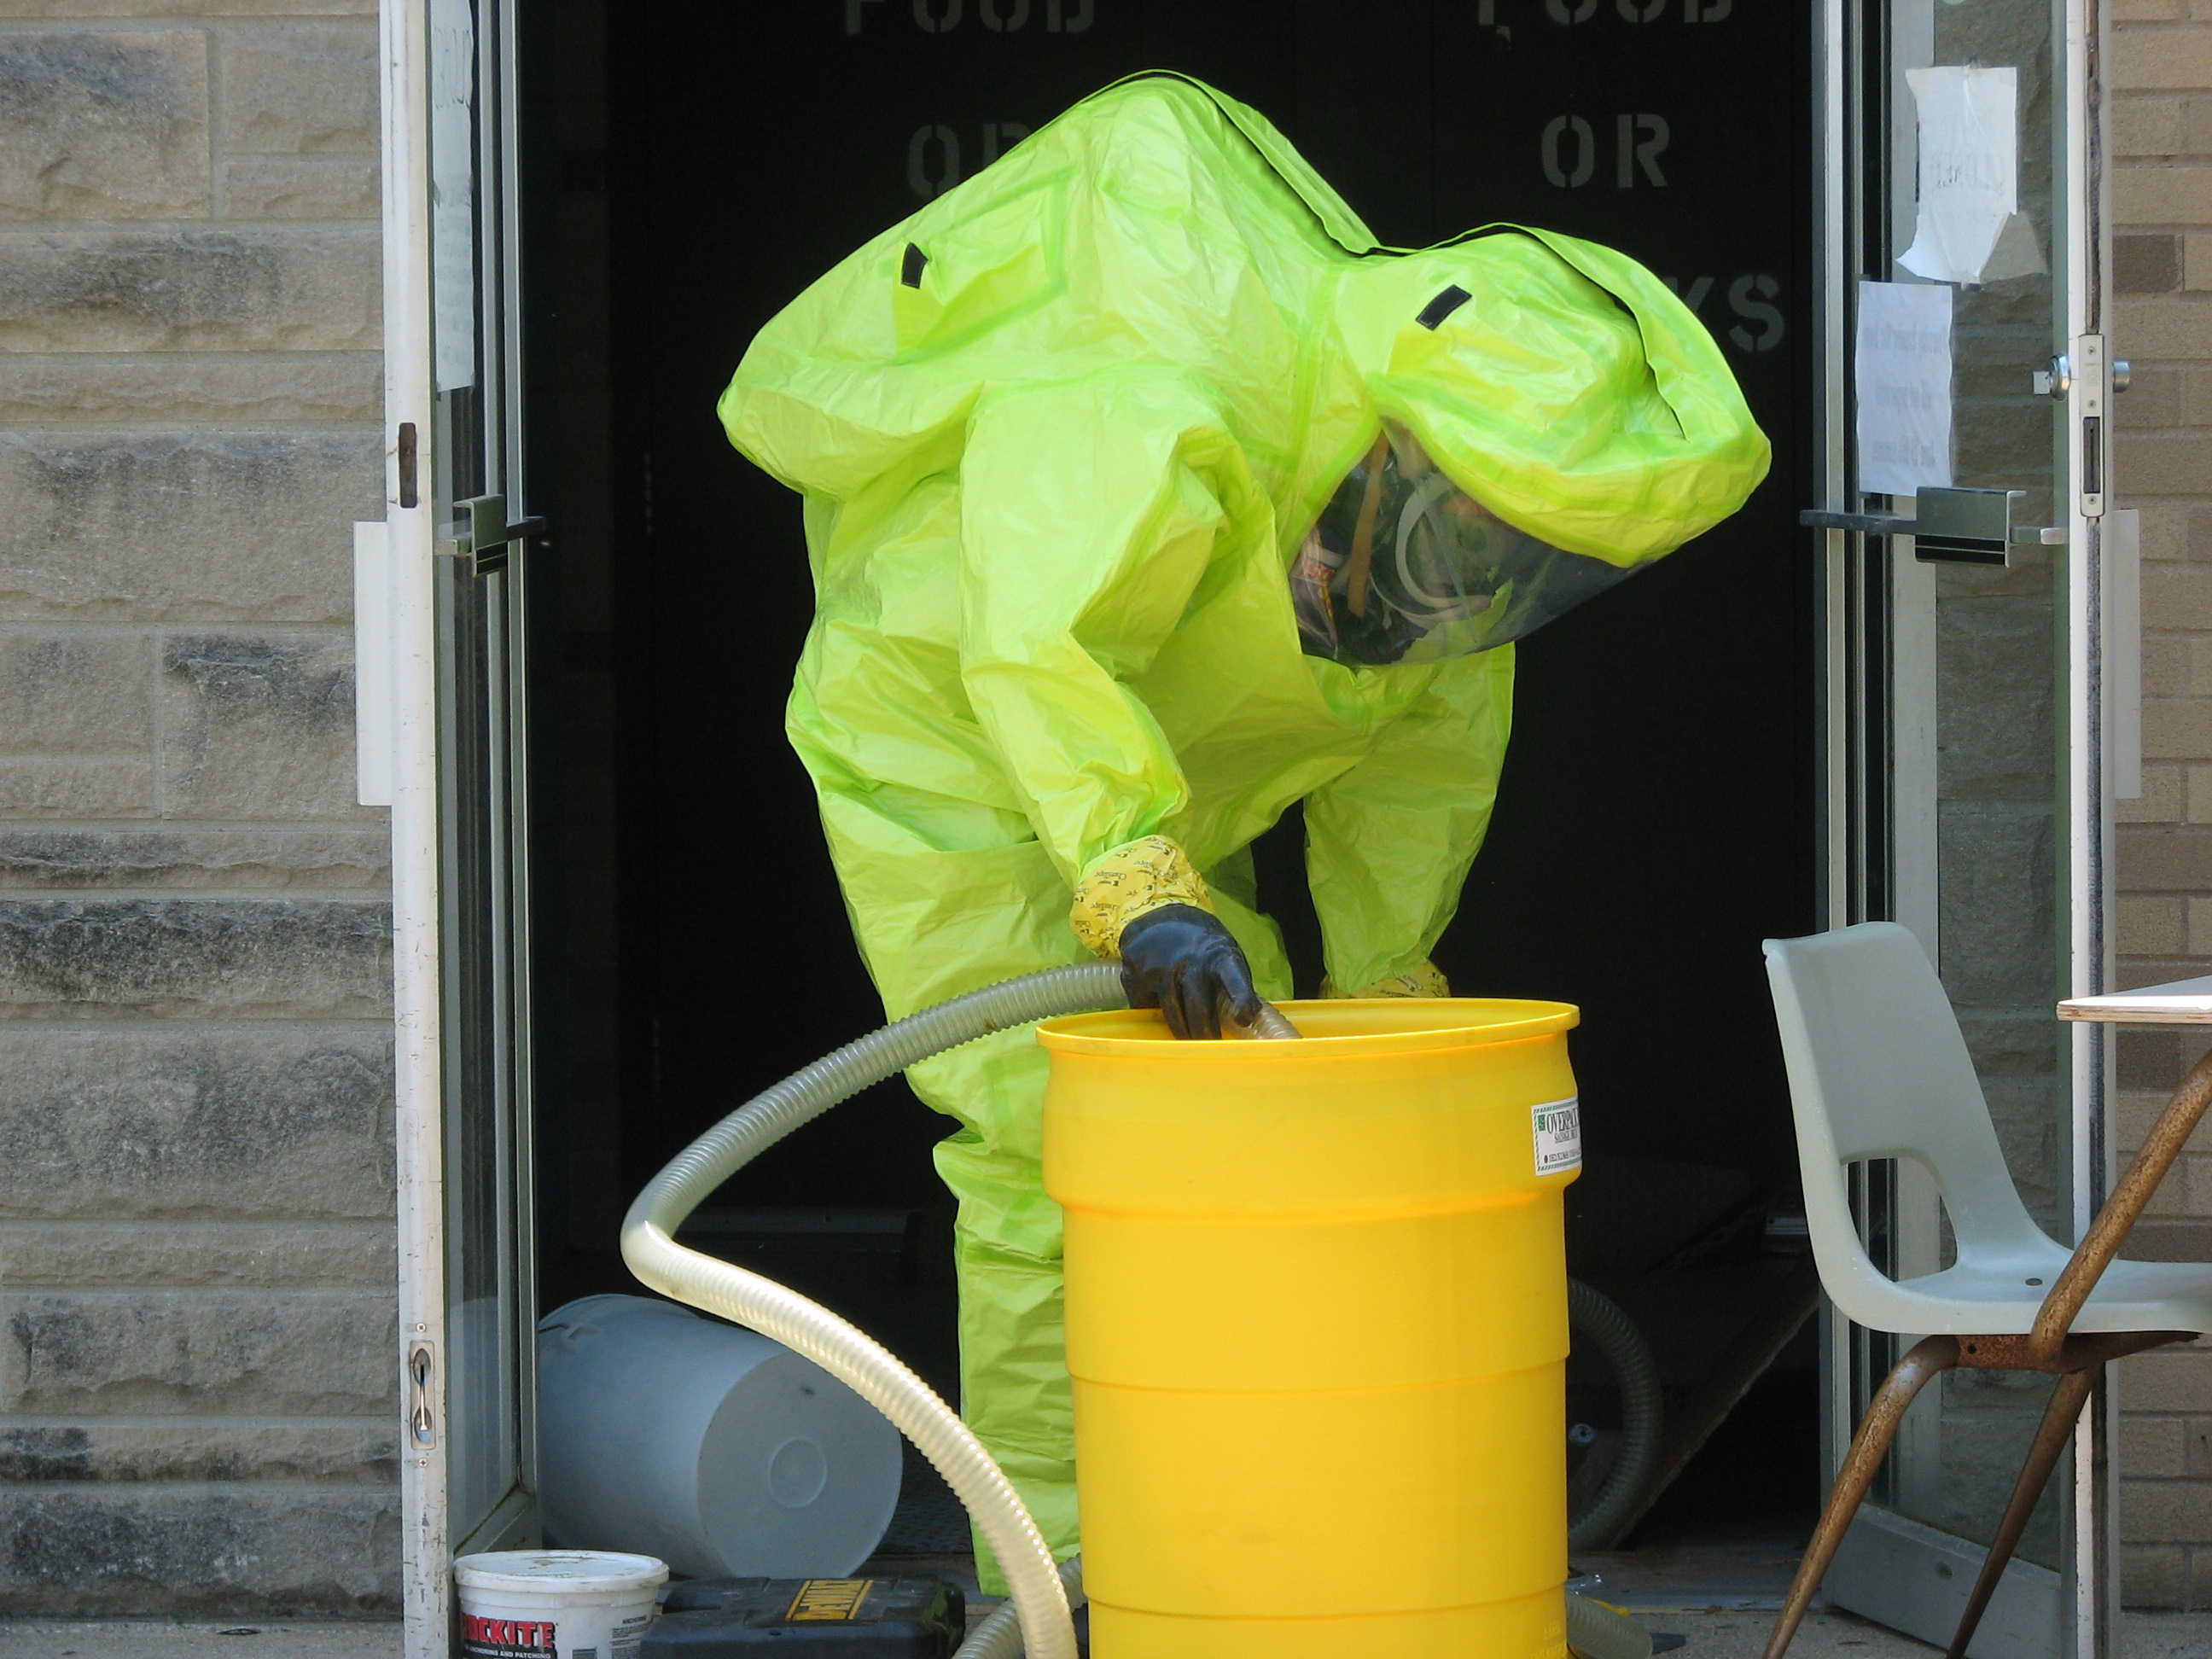 Carroll Incident - HazMat Team Member in HazMat Suit with a hose and a barrel